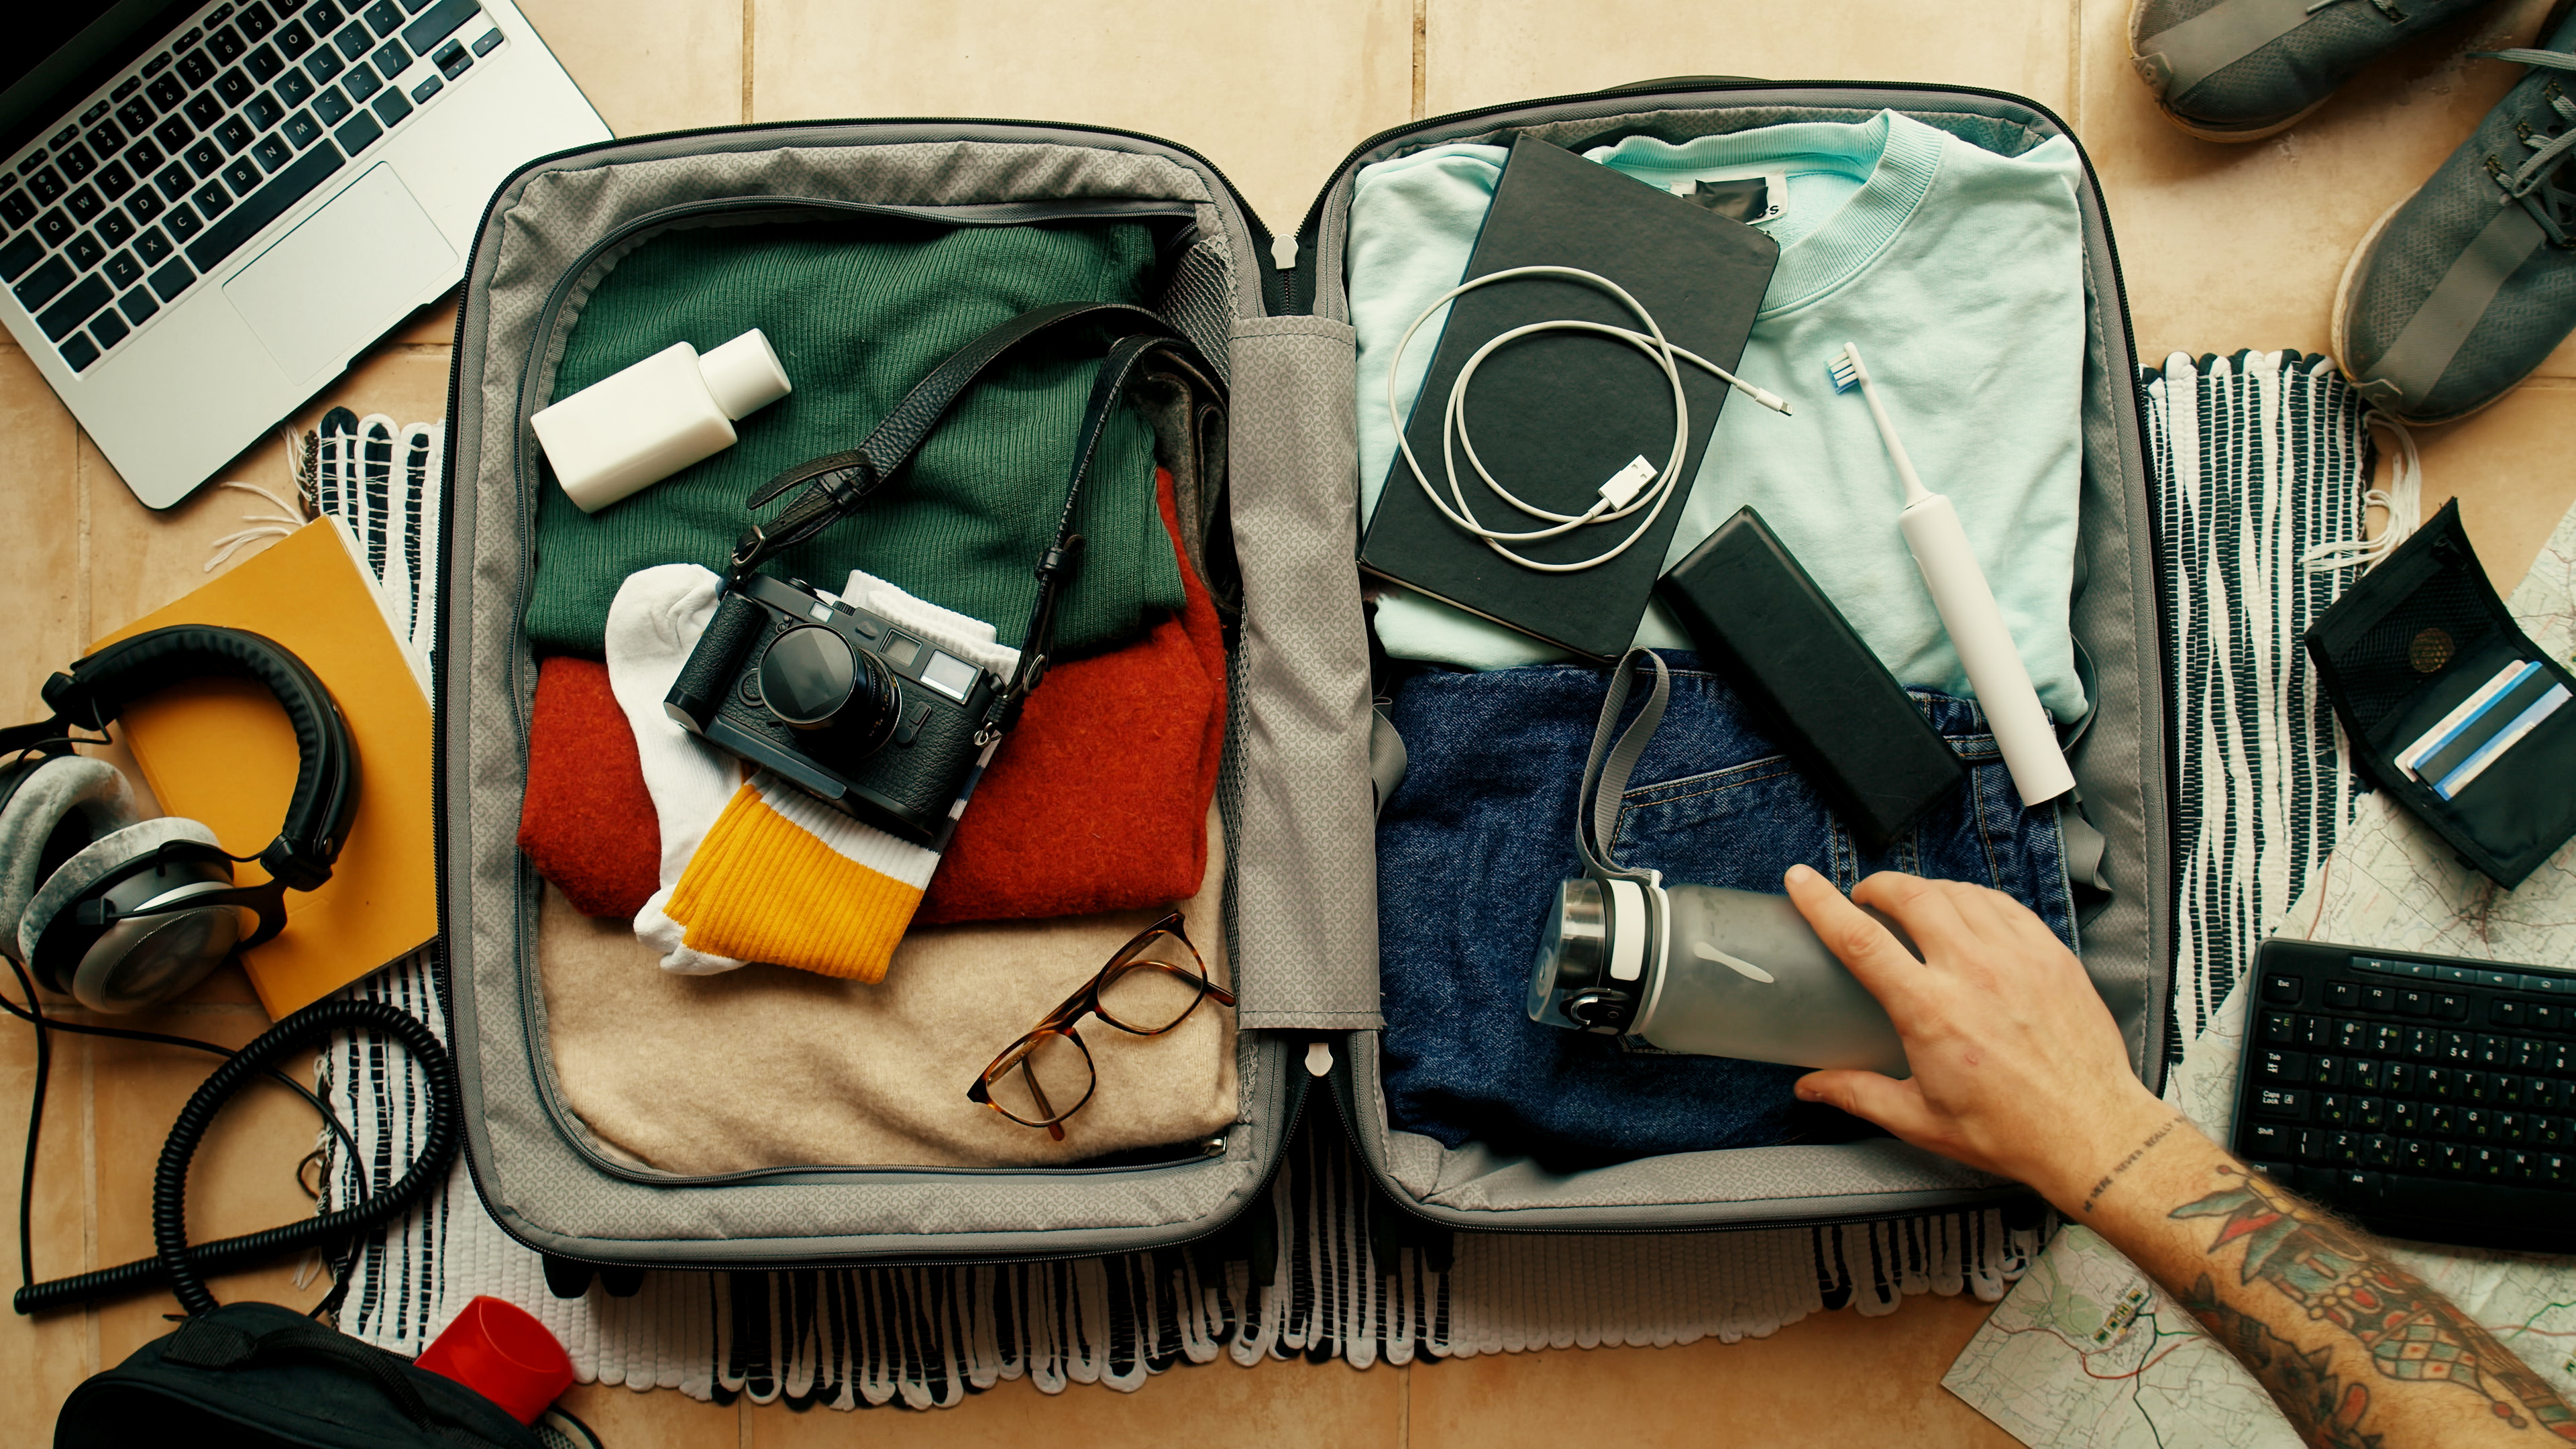 packing for domestic travel - checklist